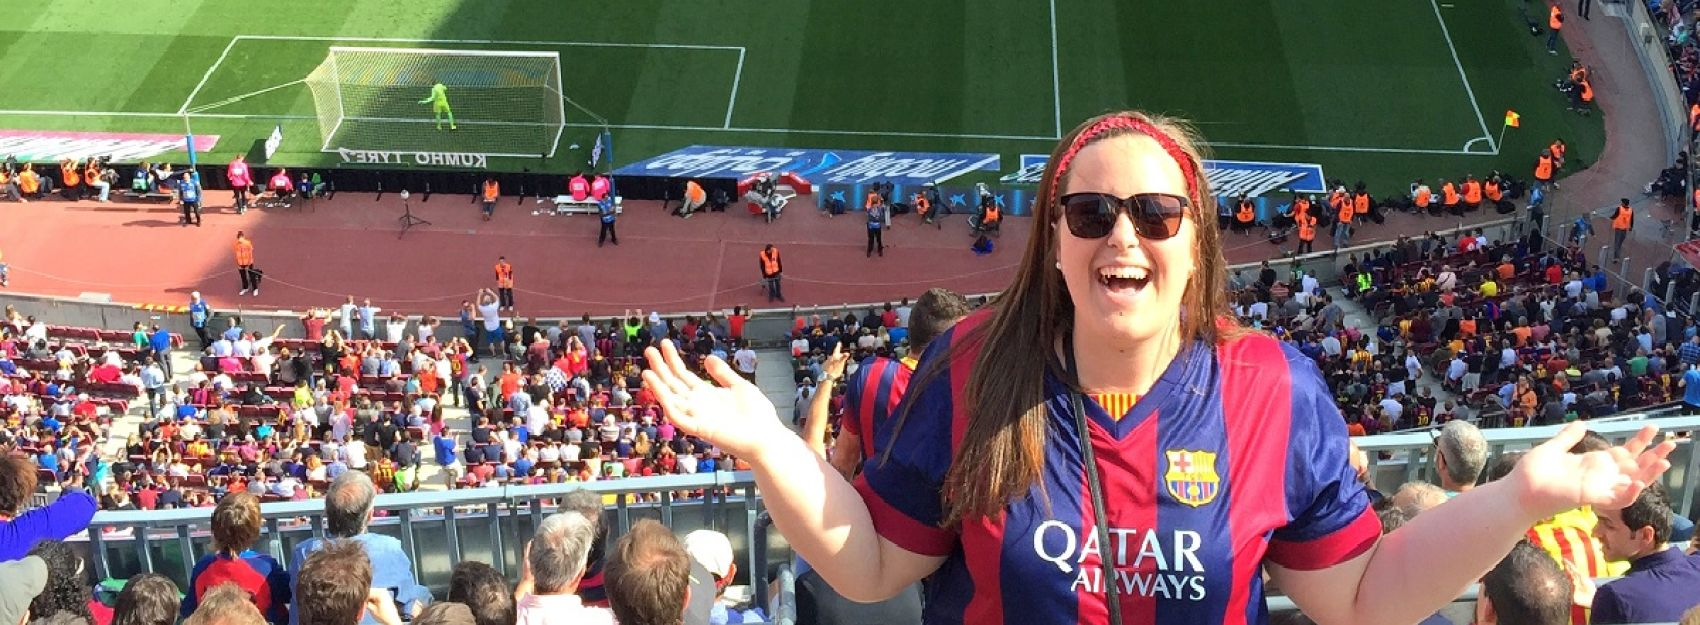 IES Abroad student smiling in front of soccer stadium